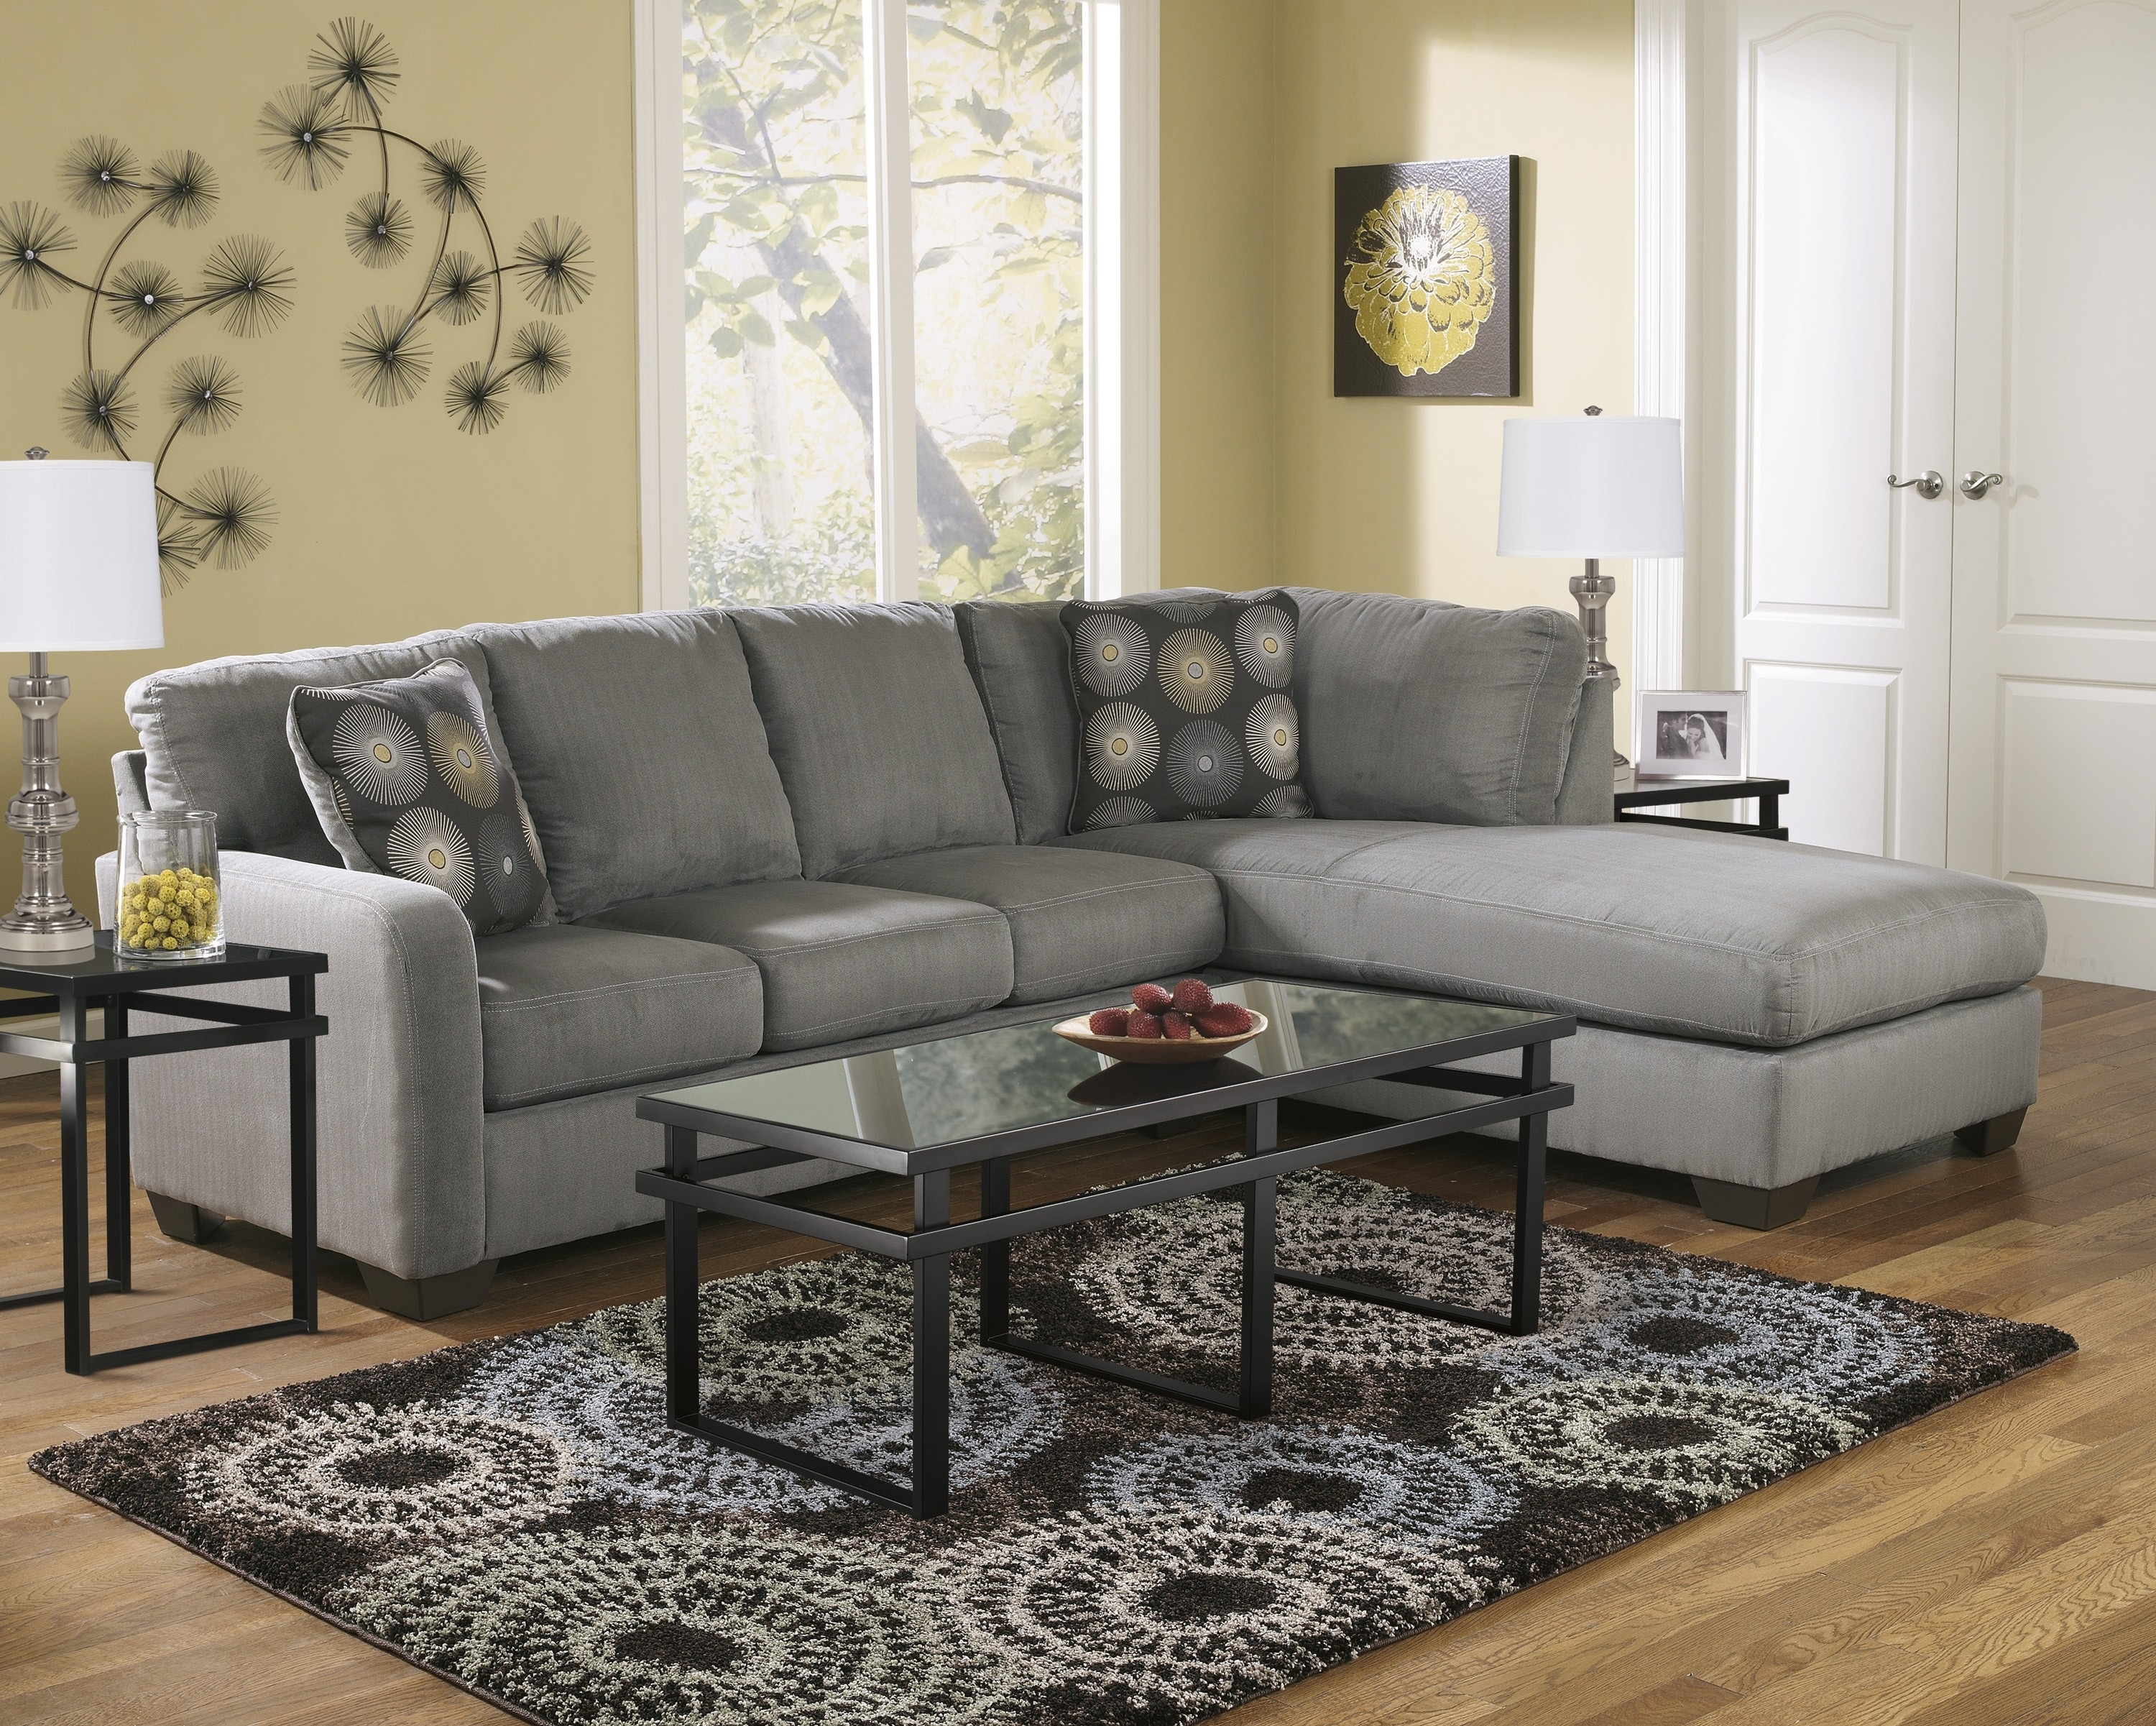 Particular Cosette Sectional Morris Home Sectional Sofas To Exciting Intended For Kerri 2 Piece Sectionals With Laf Chaise (Image 22 of 25)